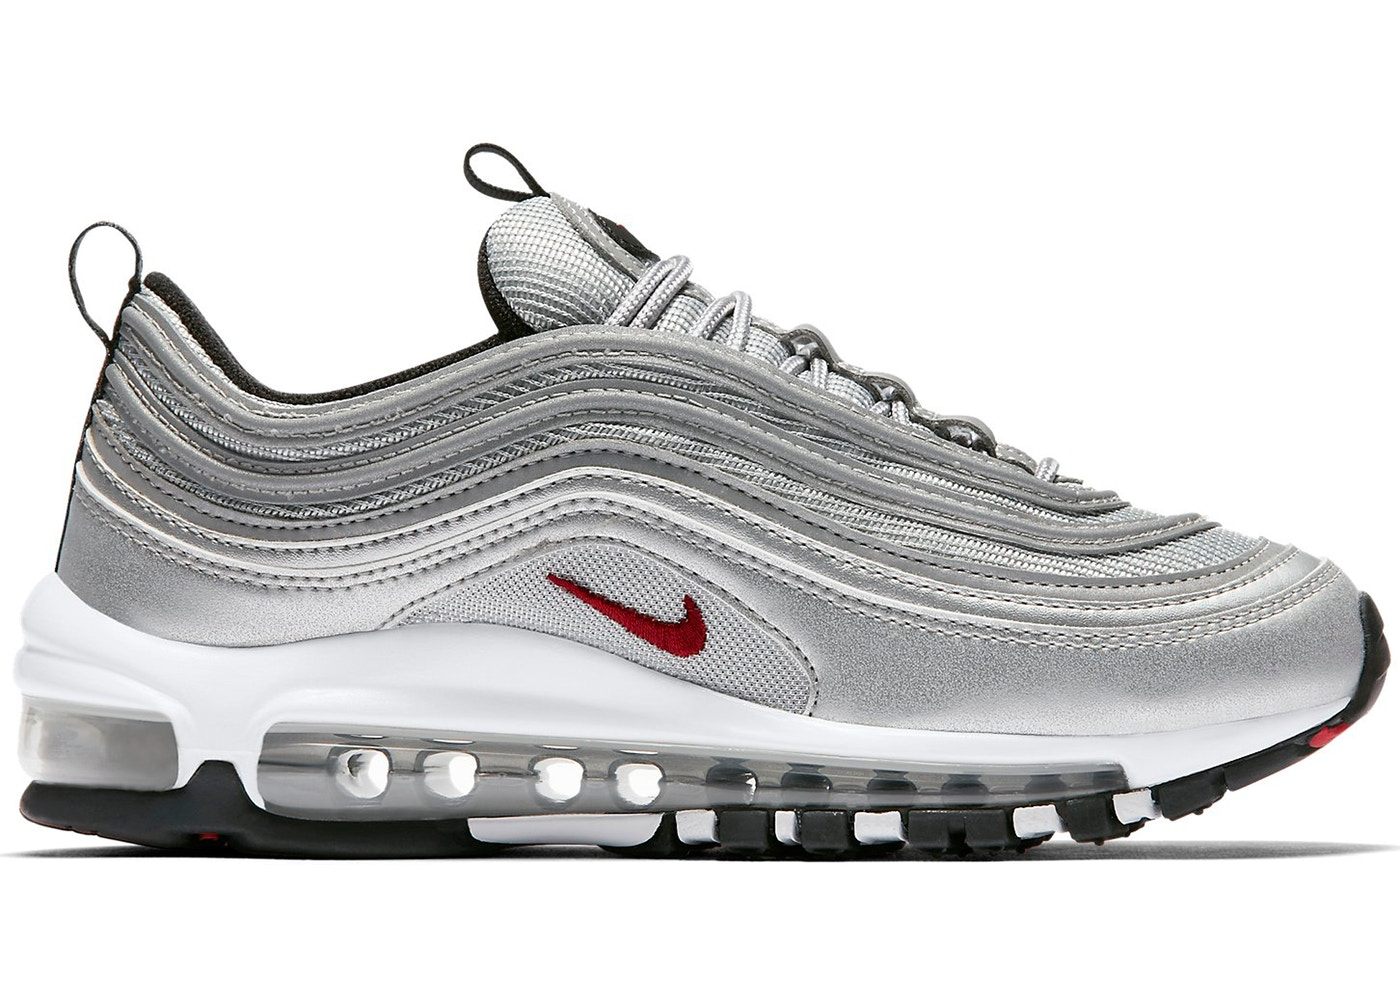 A First Look at Nike's All New Air Max 97 Range